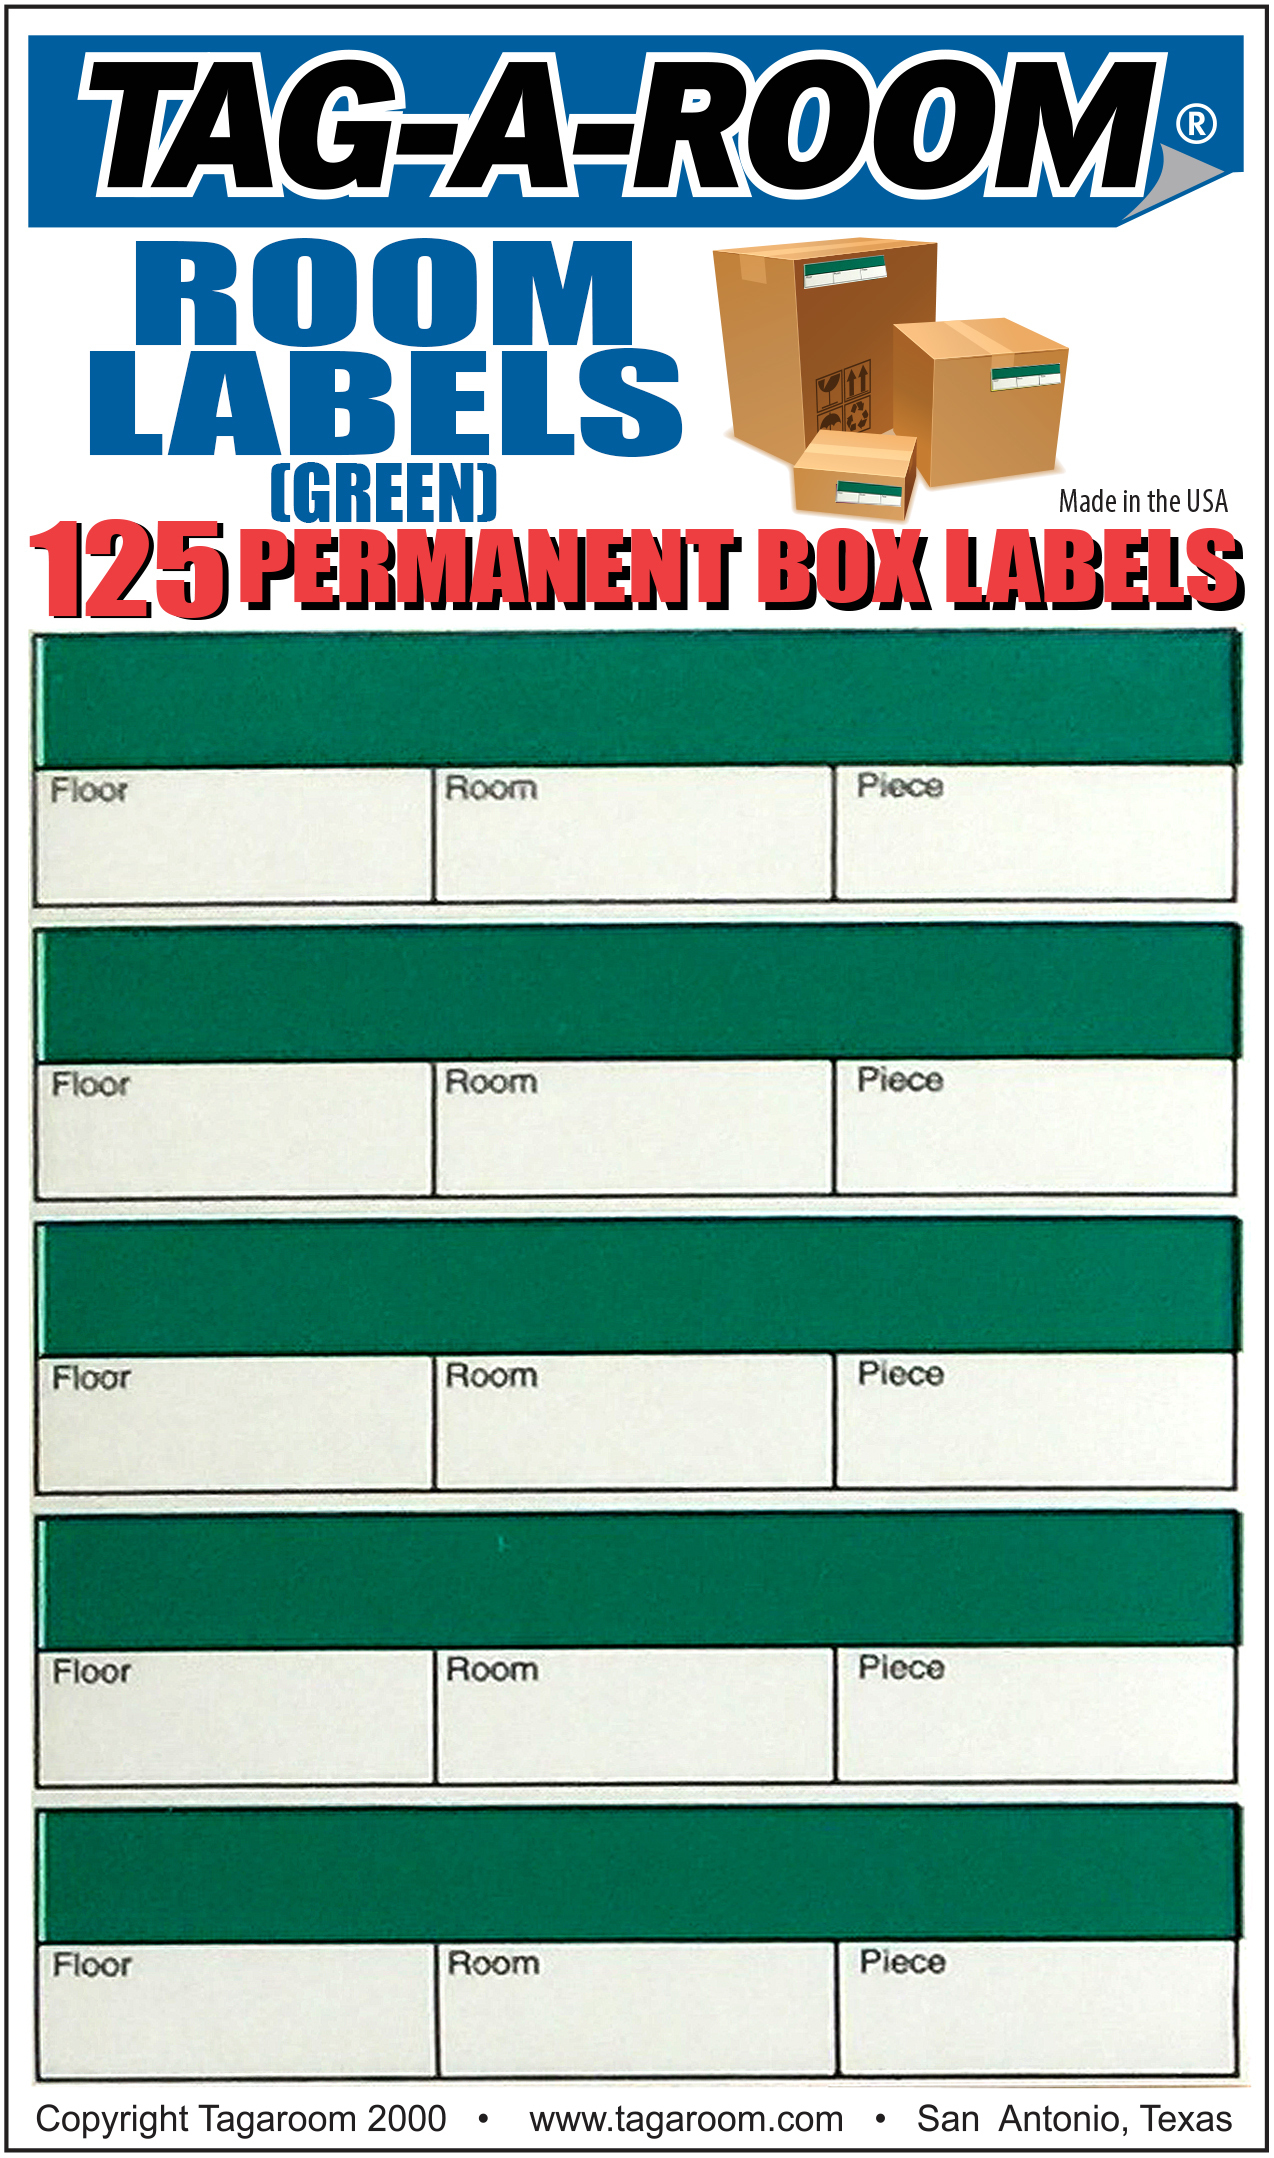 Office - Label - Room - Green - 125 Count 011238